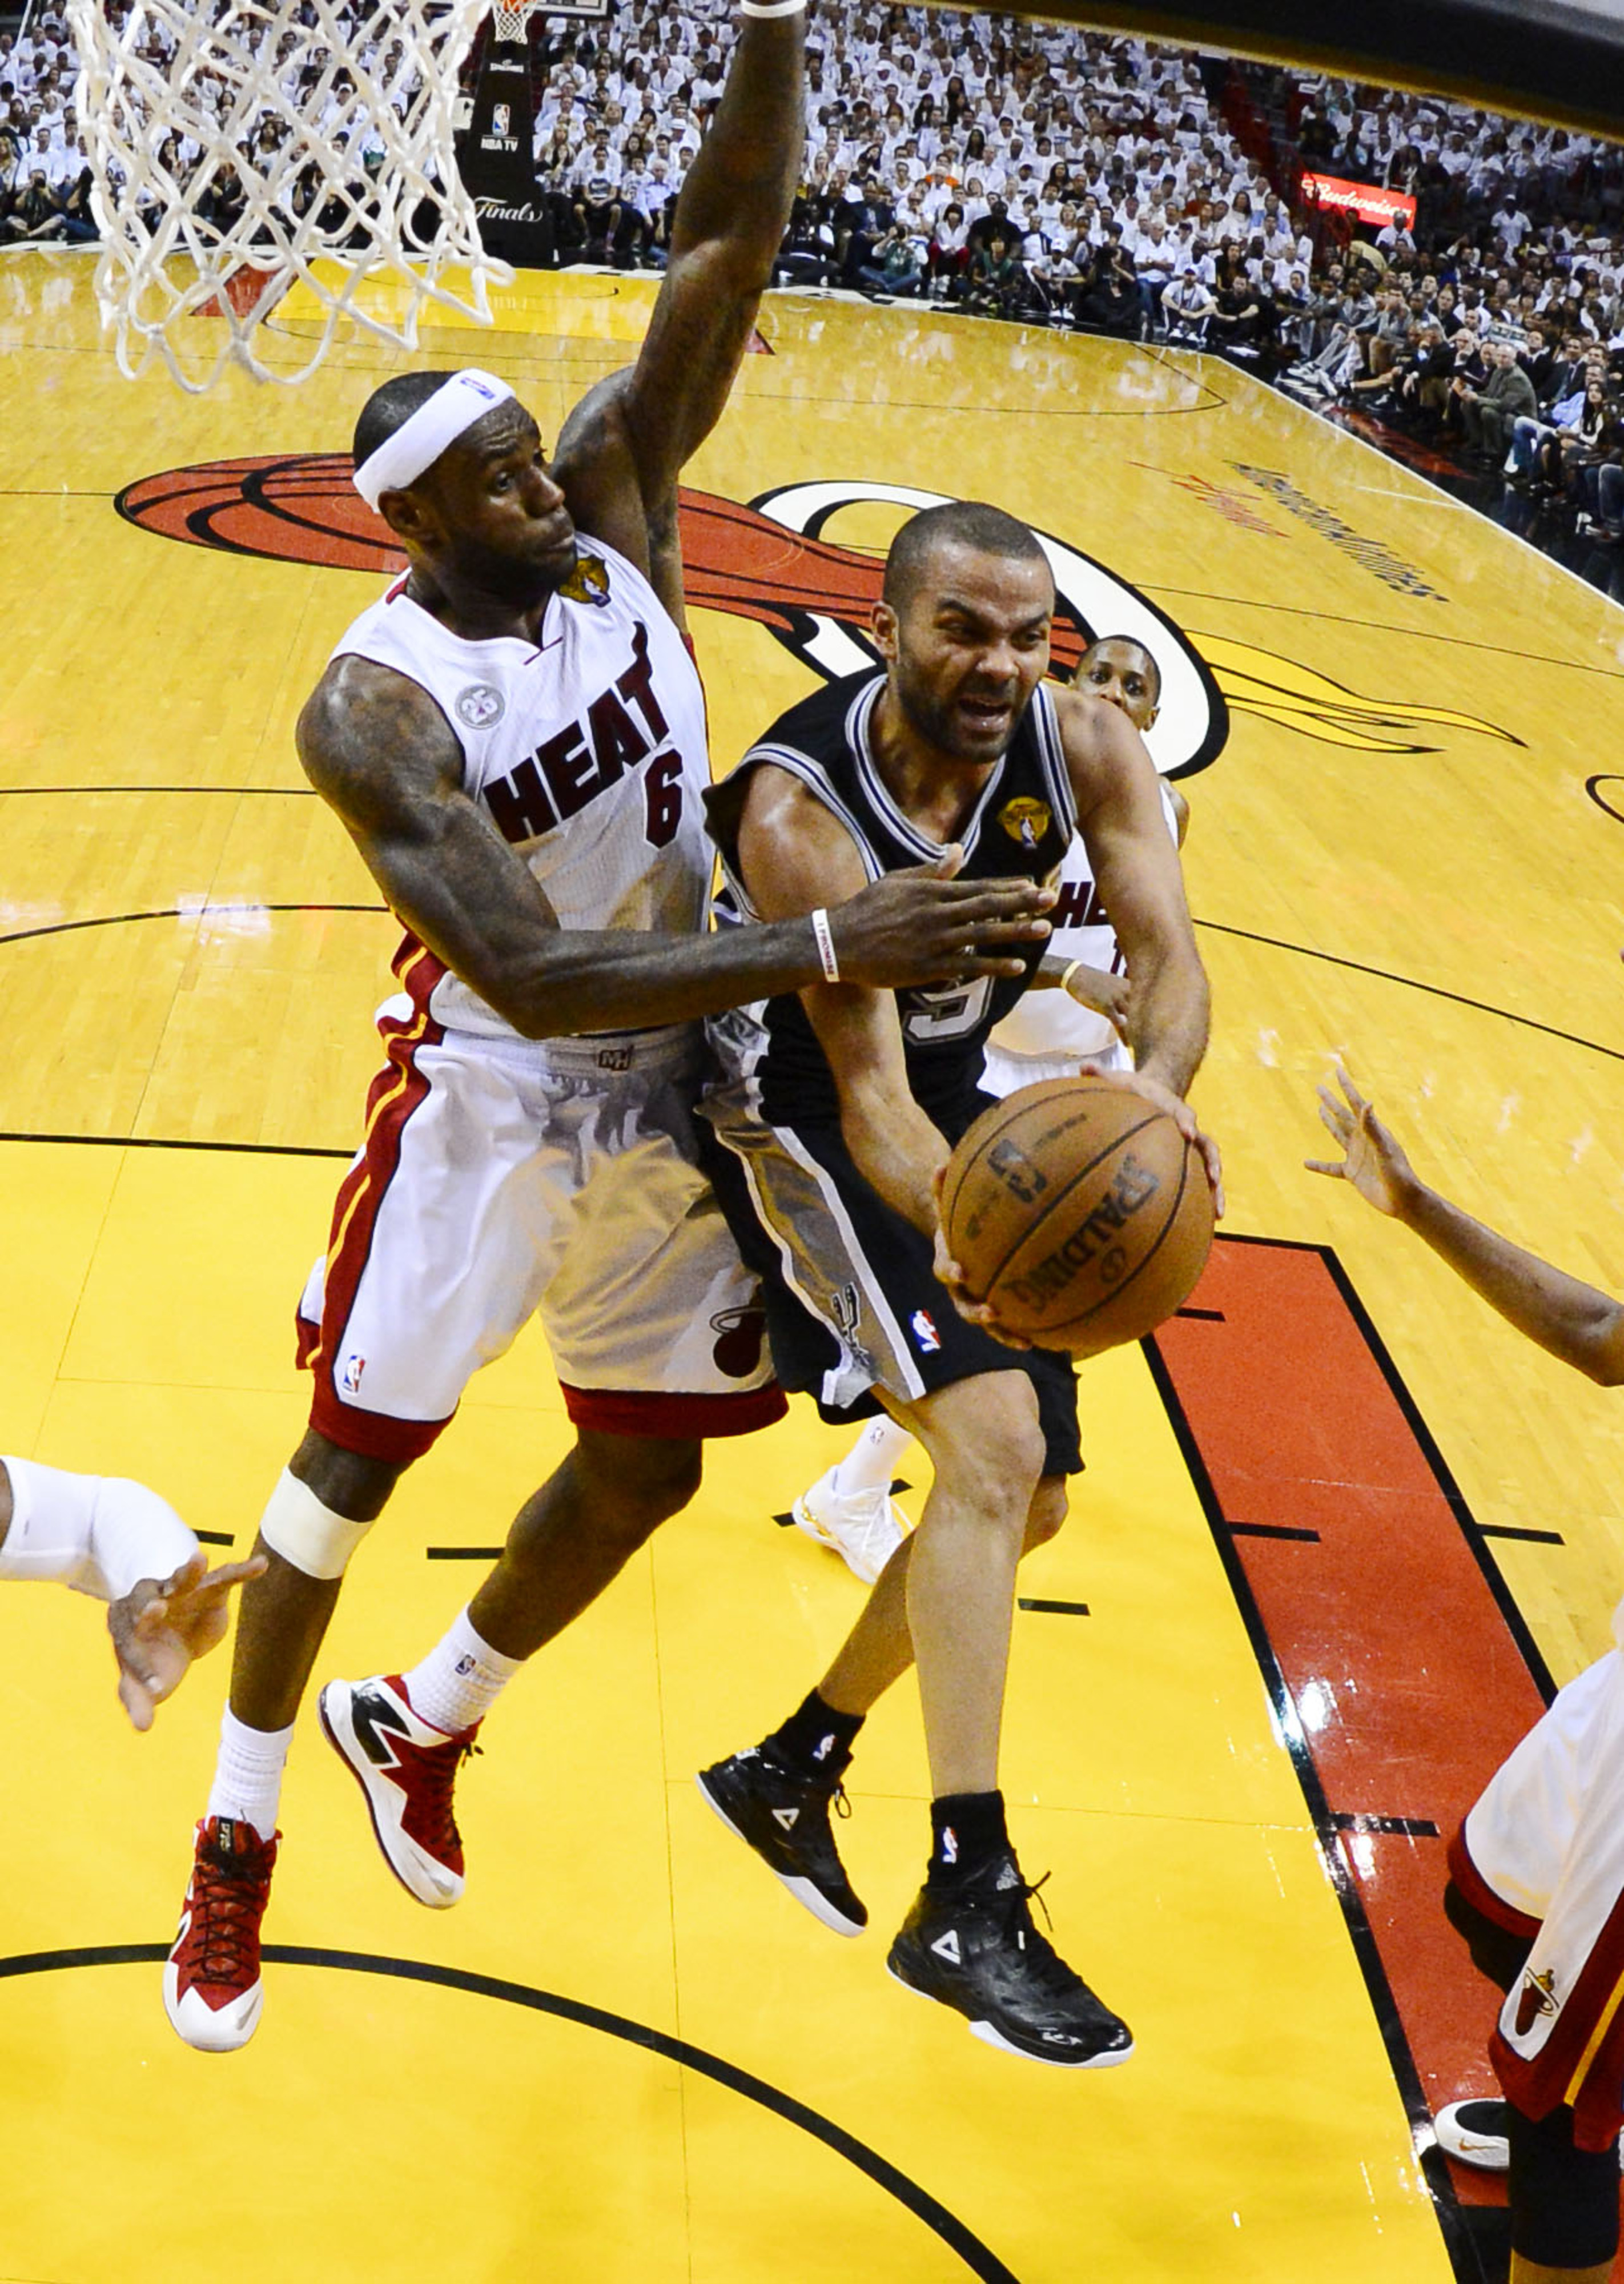 NBA Finals 2013, Spurs vs. Heat Game 2: LeBron James strikes San Antonio for 103-84 win